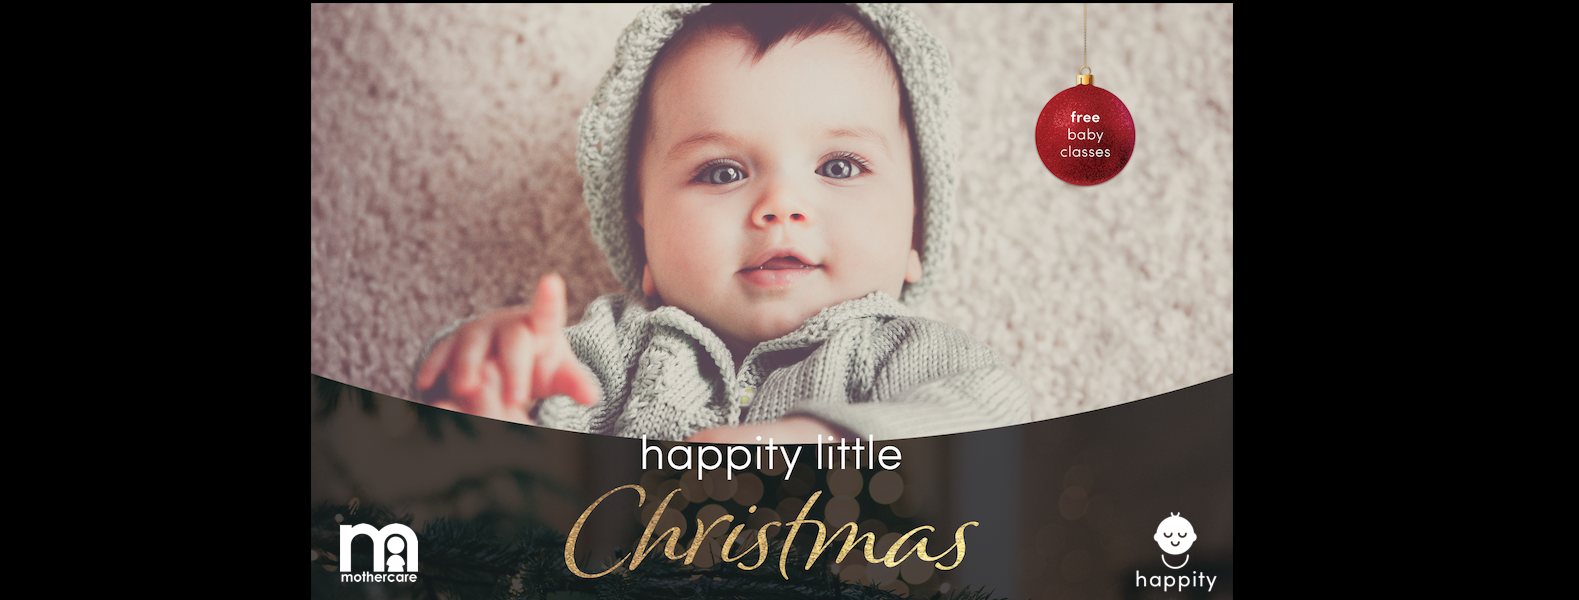 1061e6d8099c Happity Little Christmas - Free Mothercare event 3rd-6th December ...